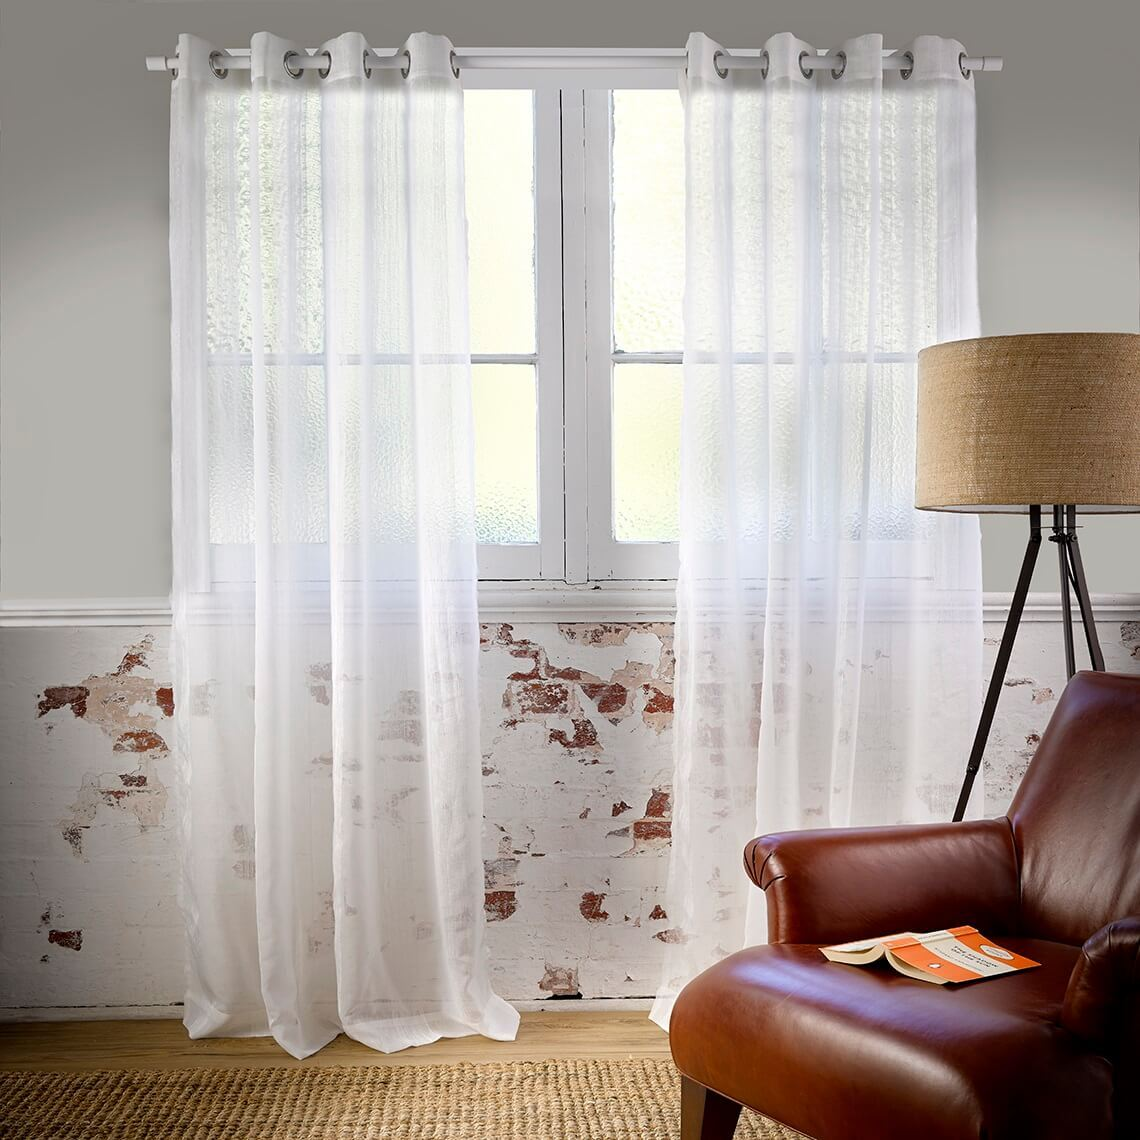 Houston Eyelet Curtain Size W 180cm x D 1cm x H 250cm in White 100% Polyester/Stainless Steel Freedom by Freedom, a Curtains for sale on Style Sourcebook